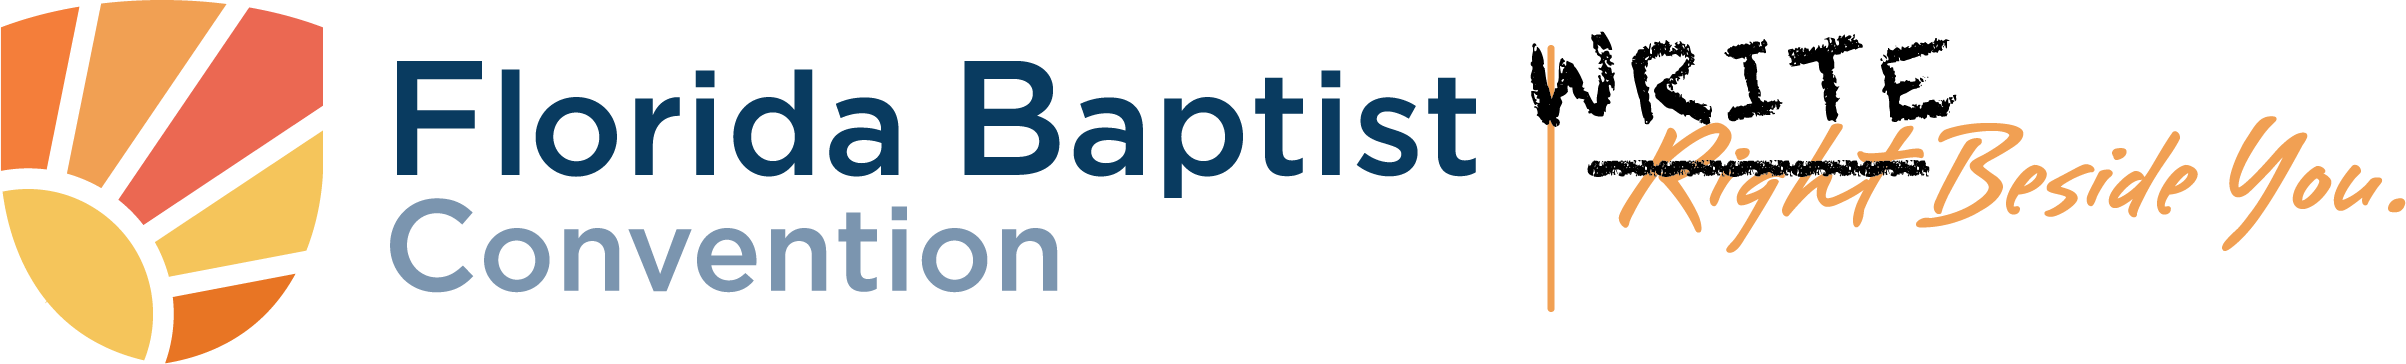 Florida Baptist Convention, Write Beside You